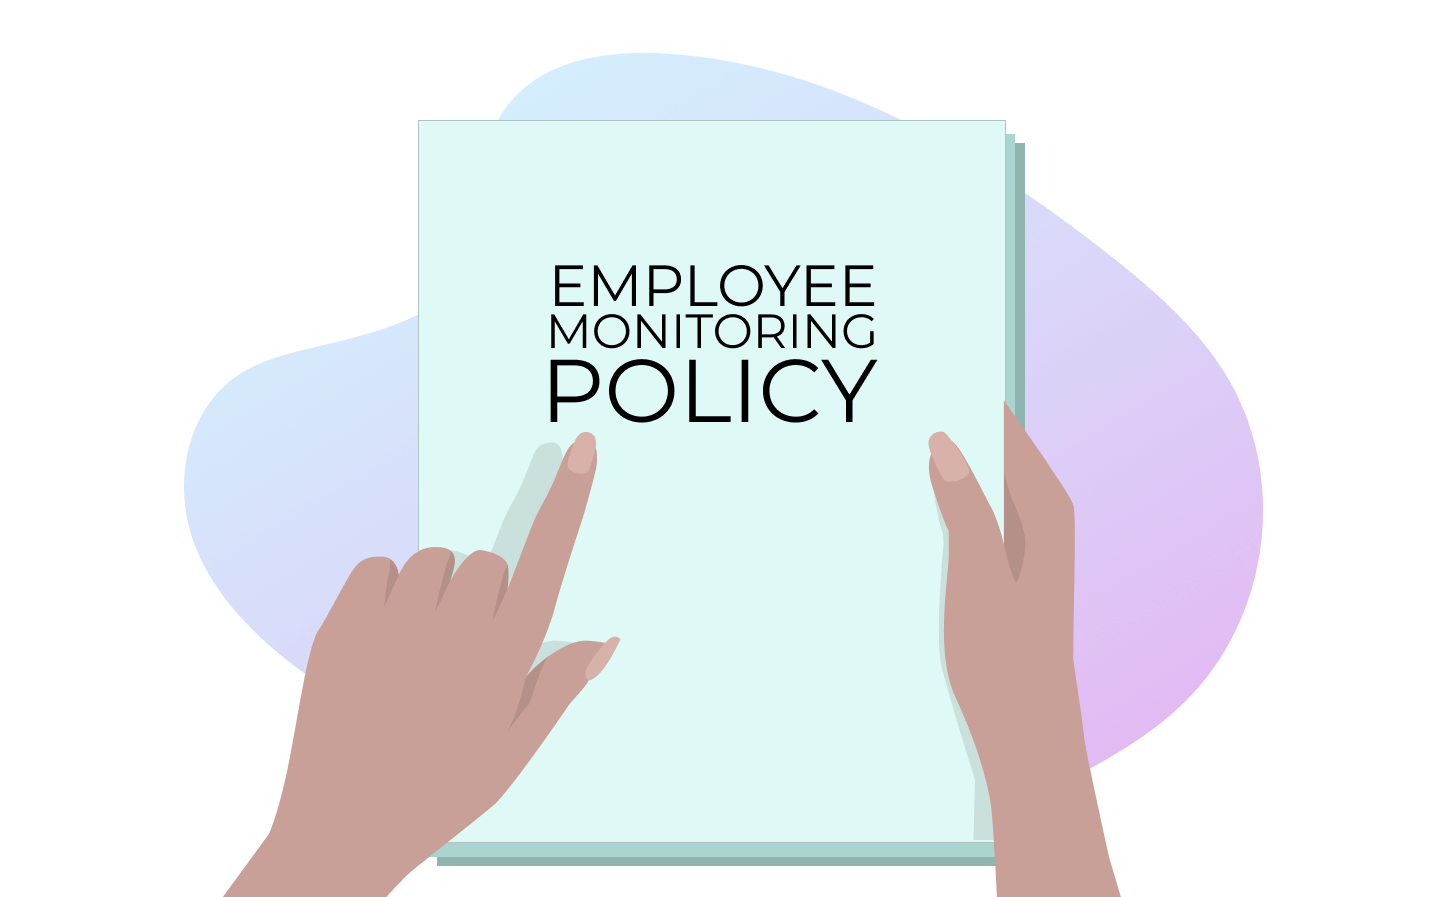 employee monitoring policy